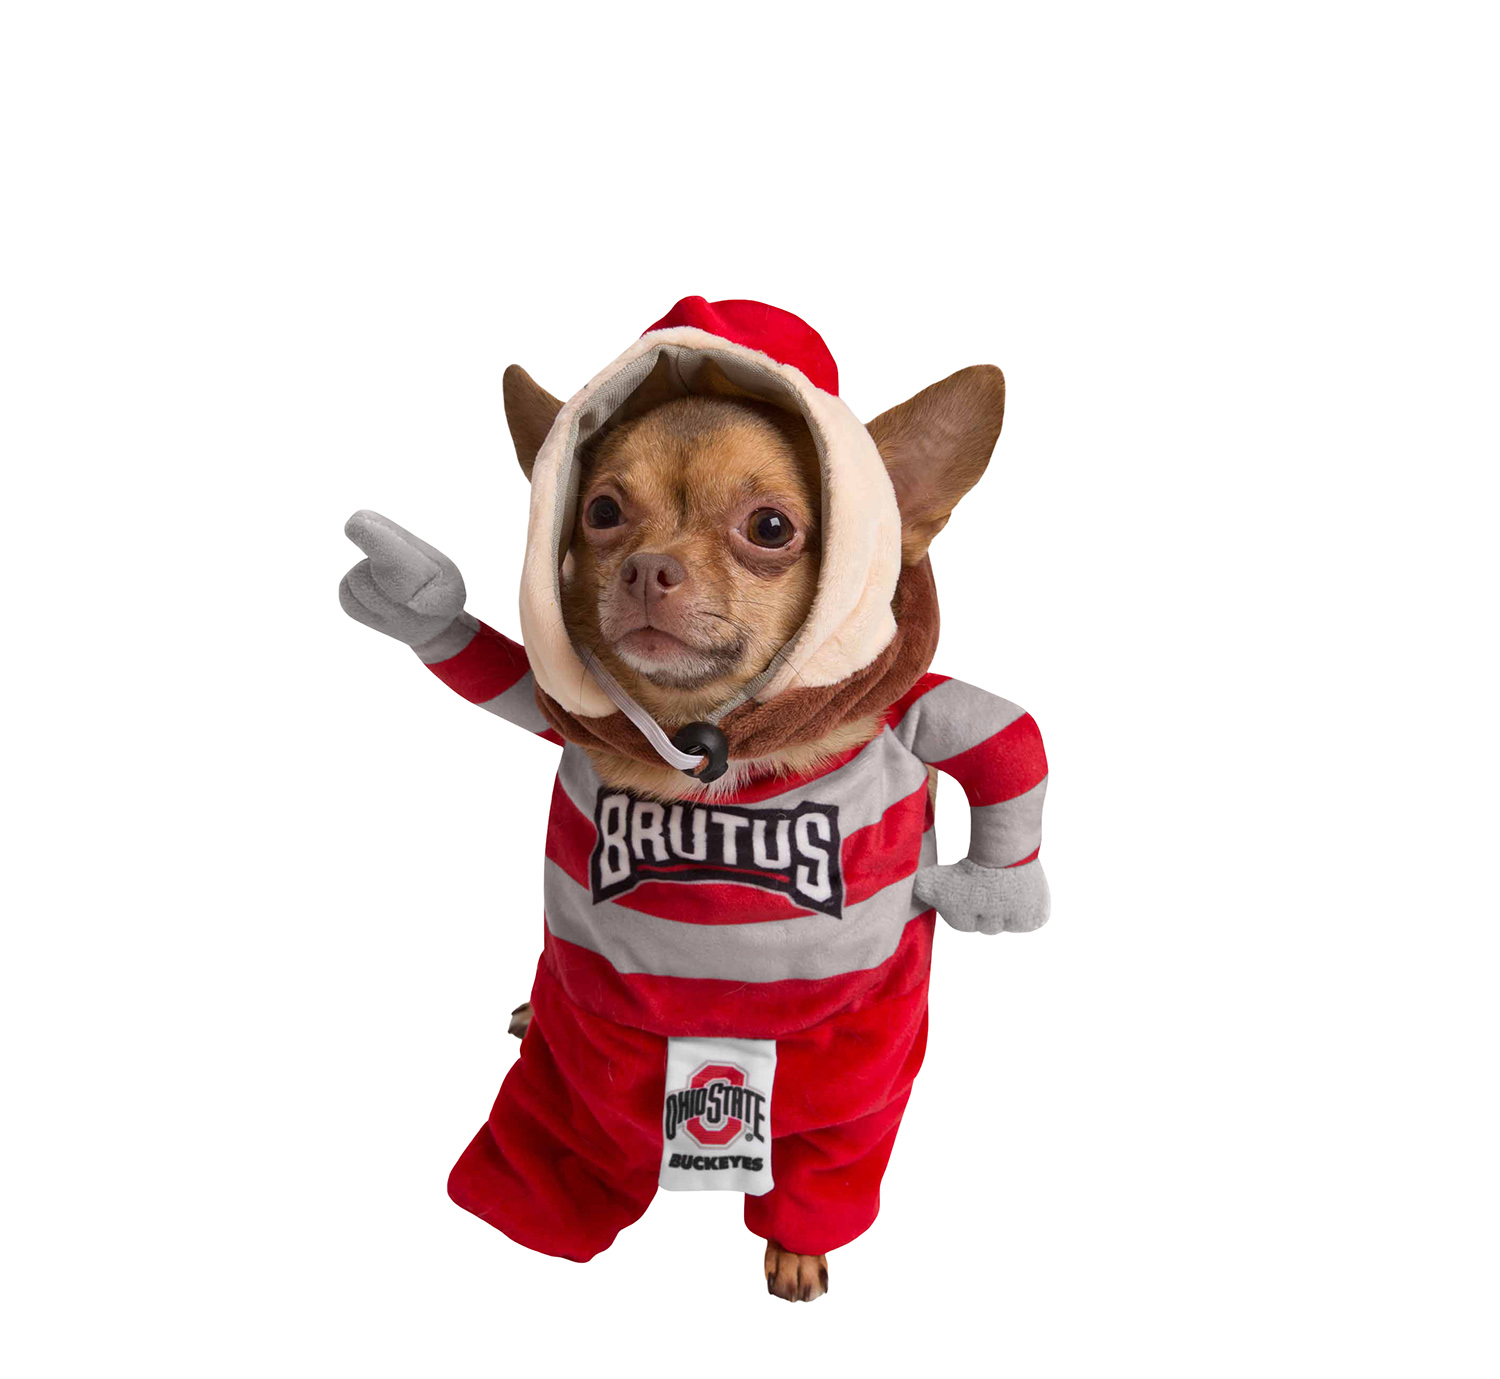 Size XL Extra Large Pet Dog Cat Funny Ohio State Buckeyes Football Brutus The Buckeye Mascot Jersey Shirt Clothes Apparel Costume Mask Hood